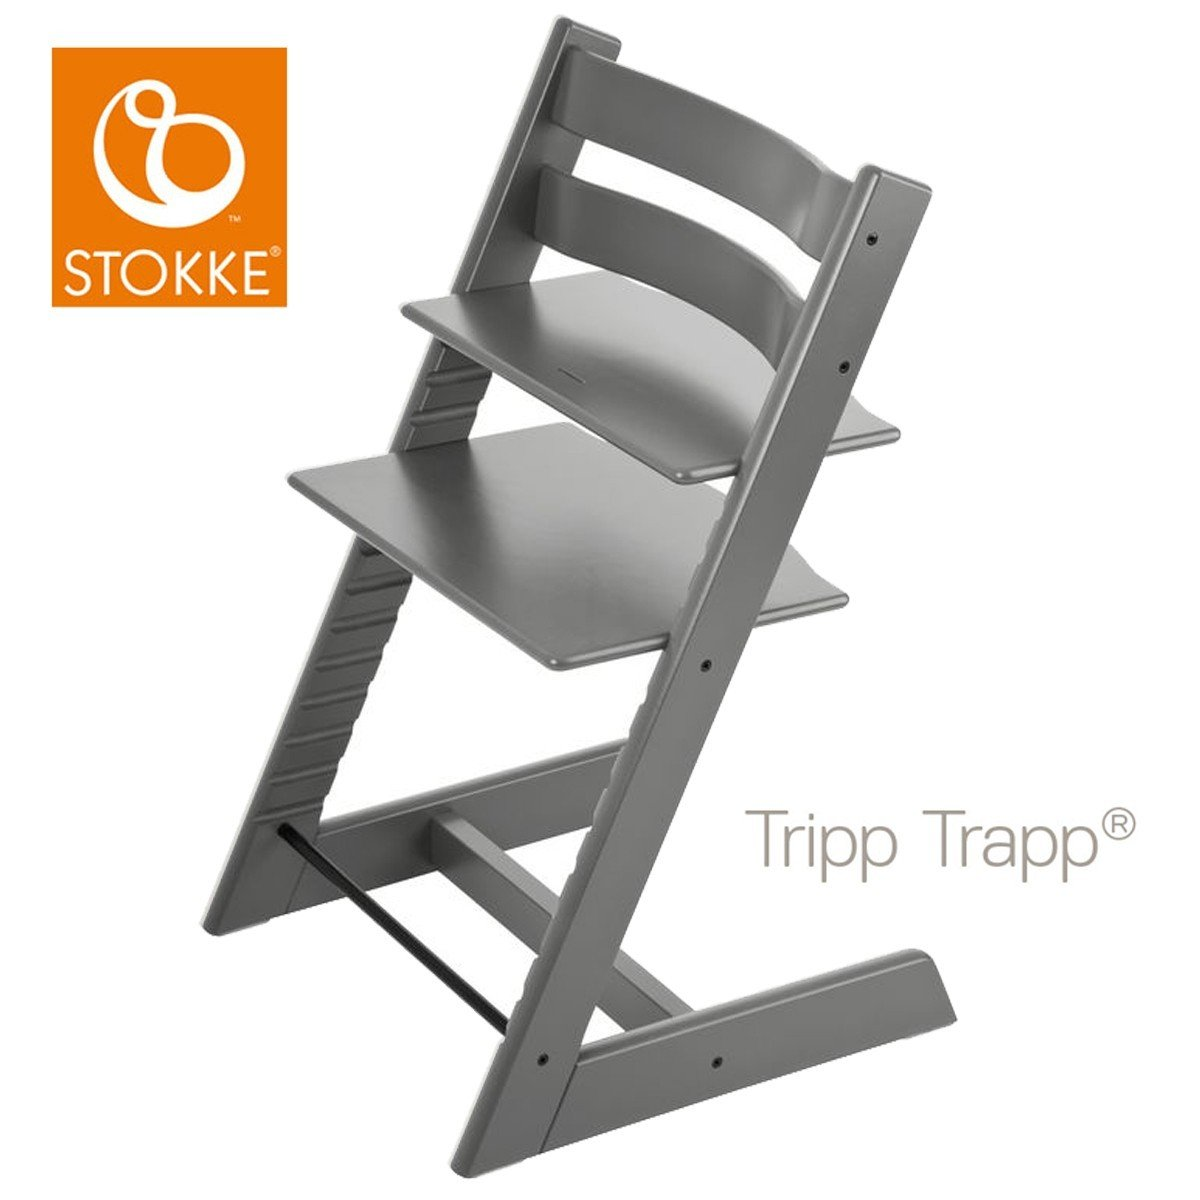 Buy Stokke Tripp Trapp Chair Walnut Brown Online At Low Prices In India    Amazon.in